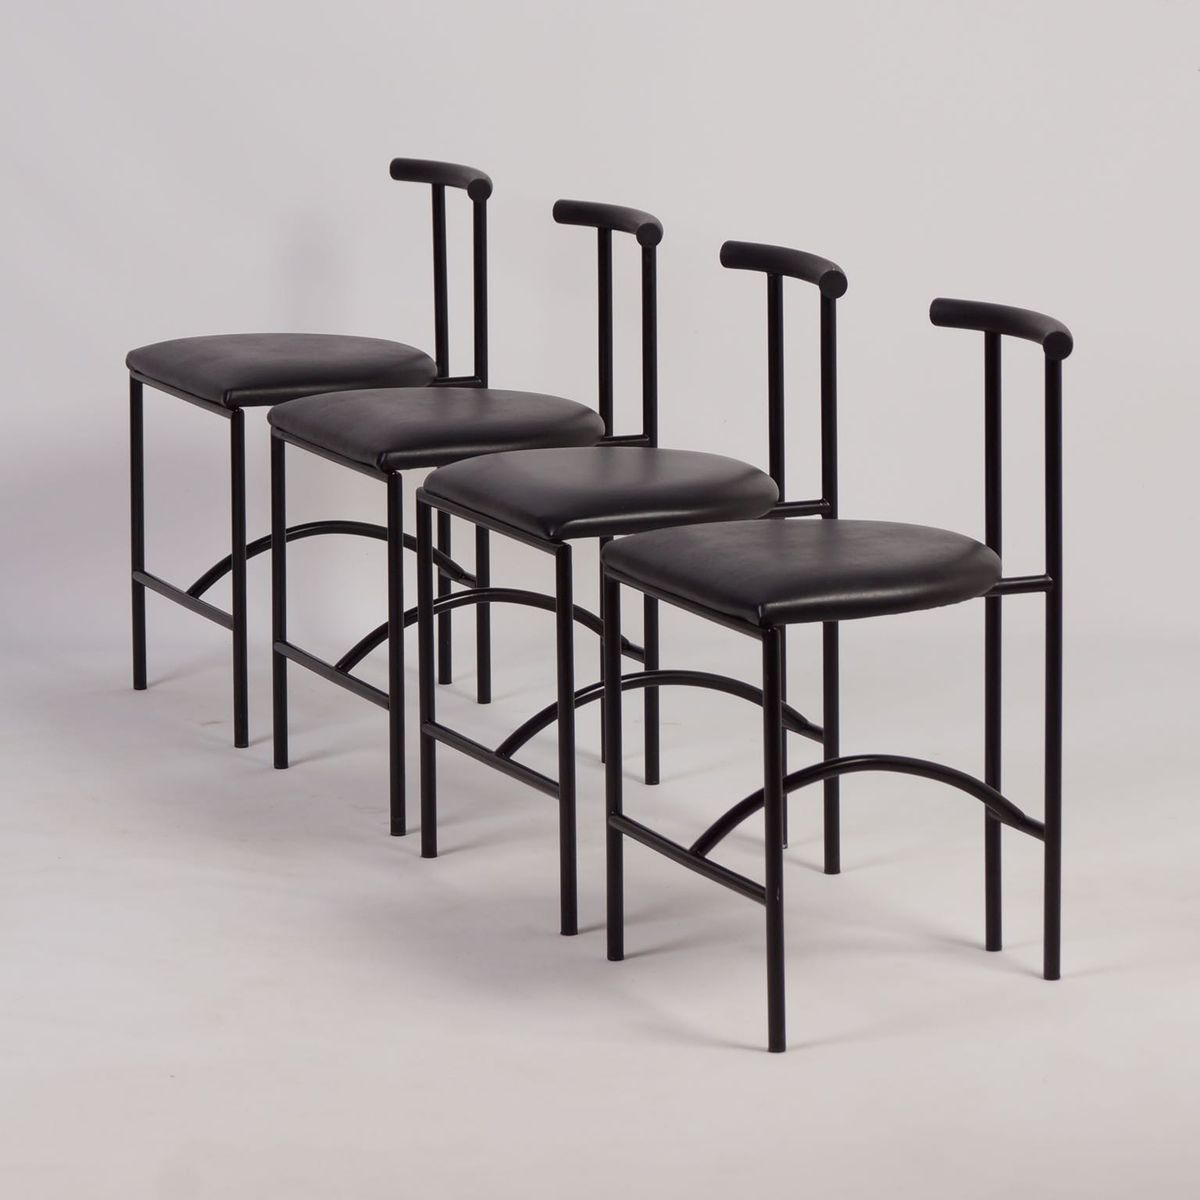 chaises de salon vintage tokyo par rodney kinsman pour bieffeplast italie 1980s set de 4 en. Black Bedroom Furniture Sets. Home Design Ideas